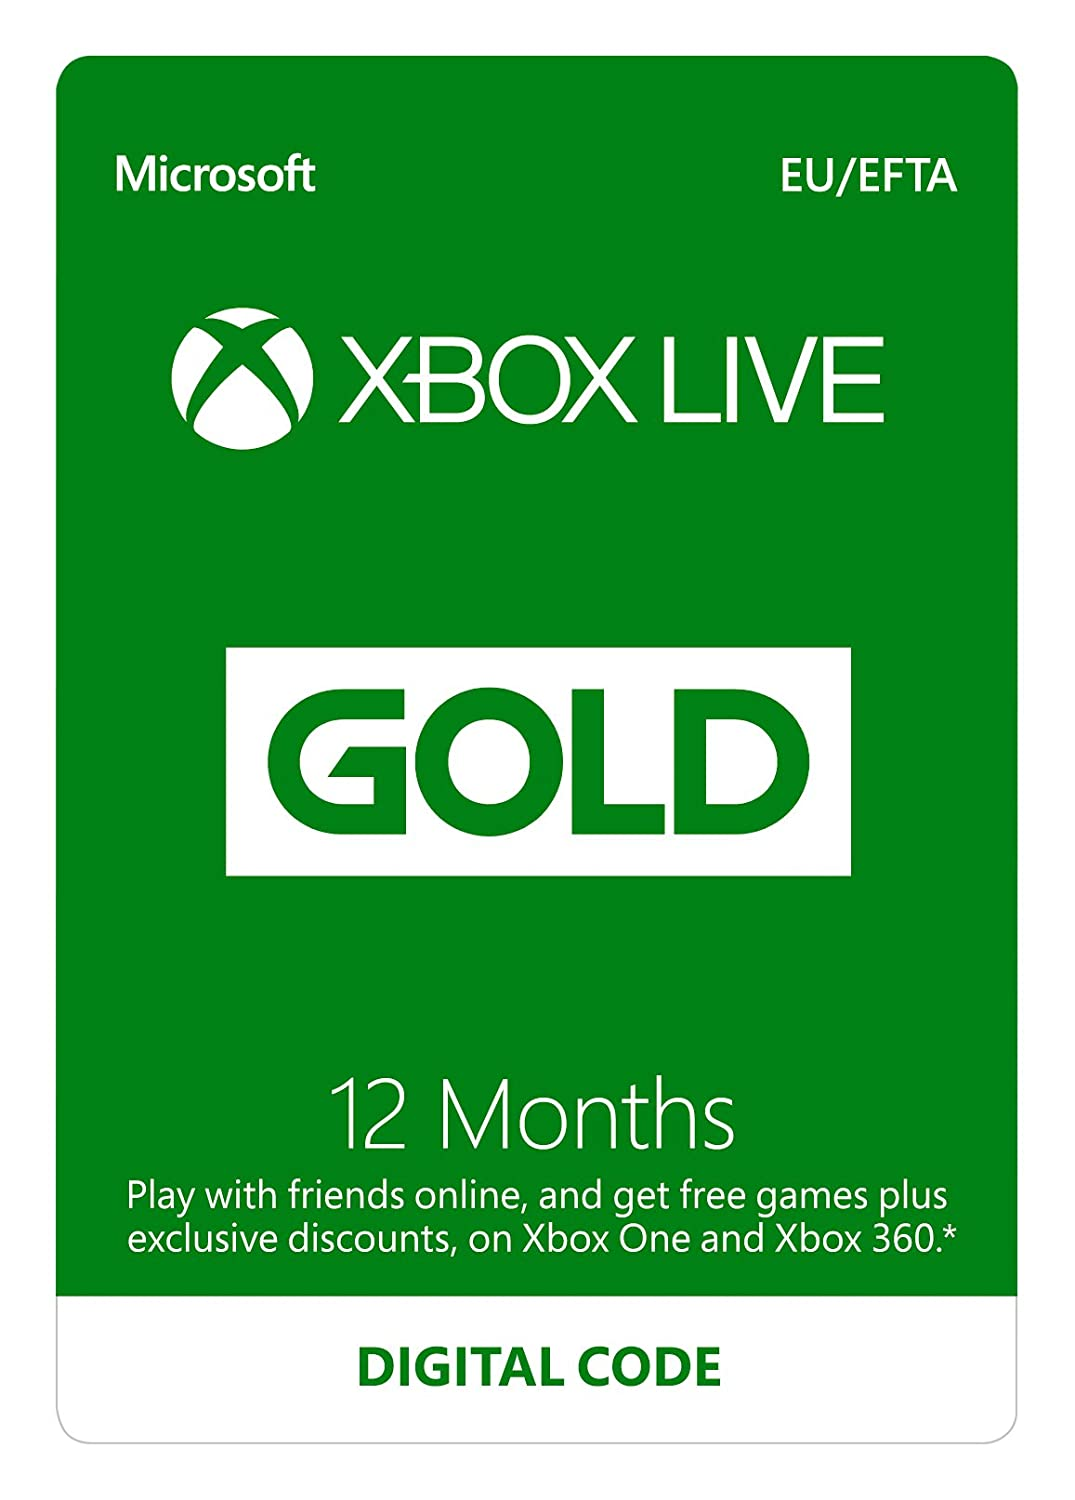 UK Daily Deals: Xbox Live Gold 12 Month Subscription for £26.50, PS Plus 15 Month Membership under £38 - IGN